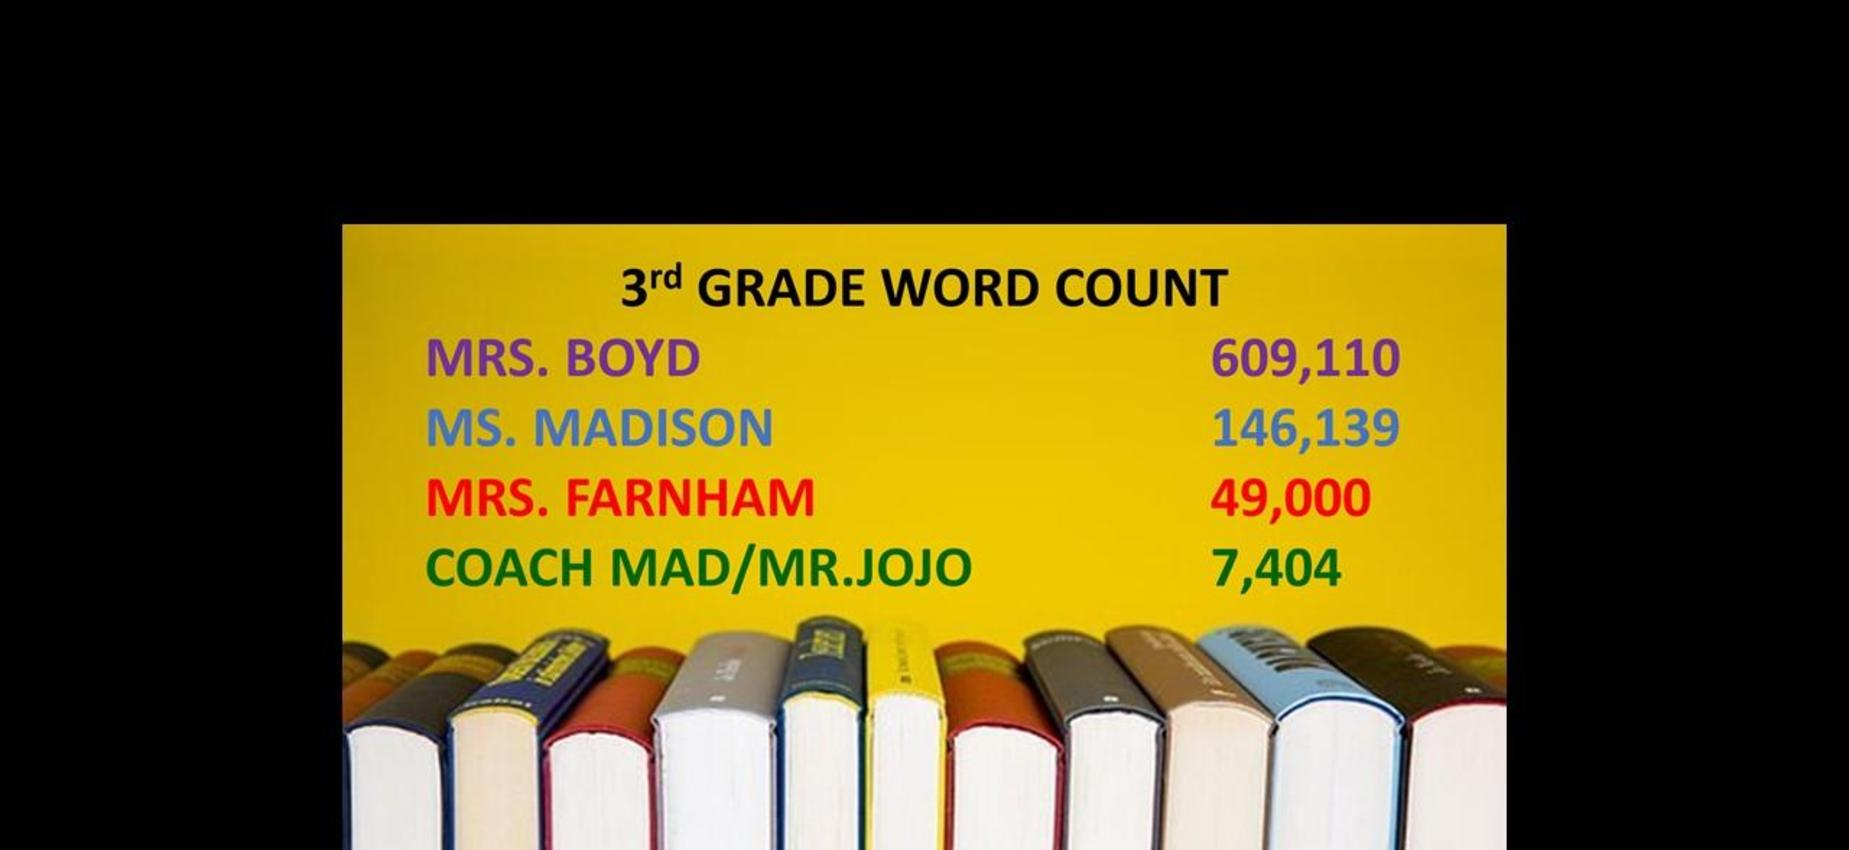 3rd Grade Word Count